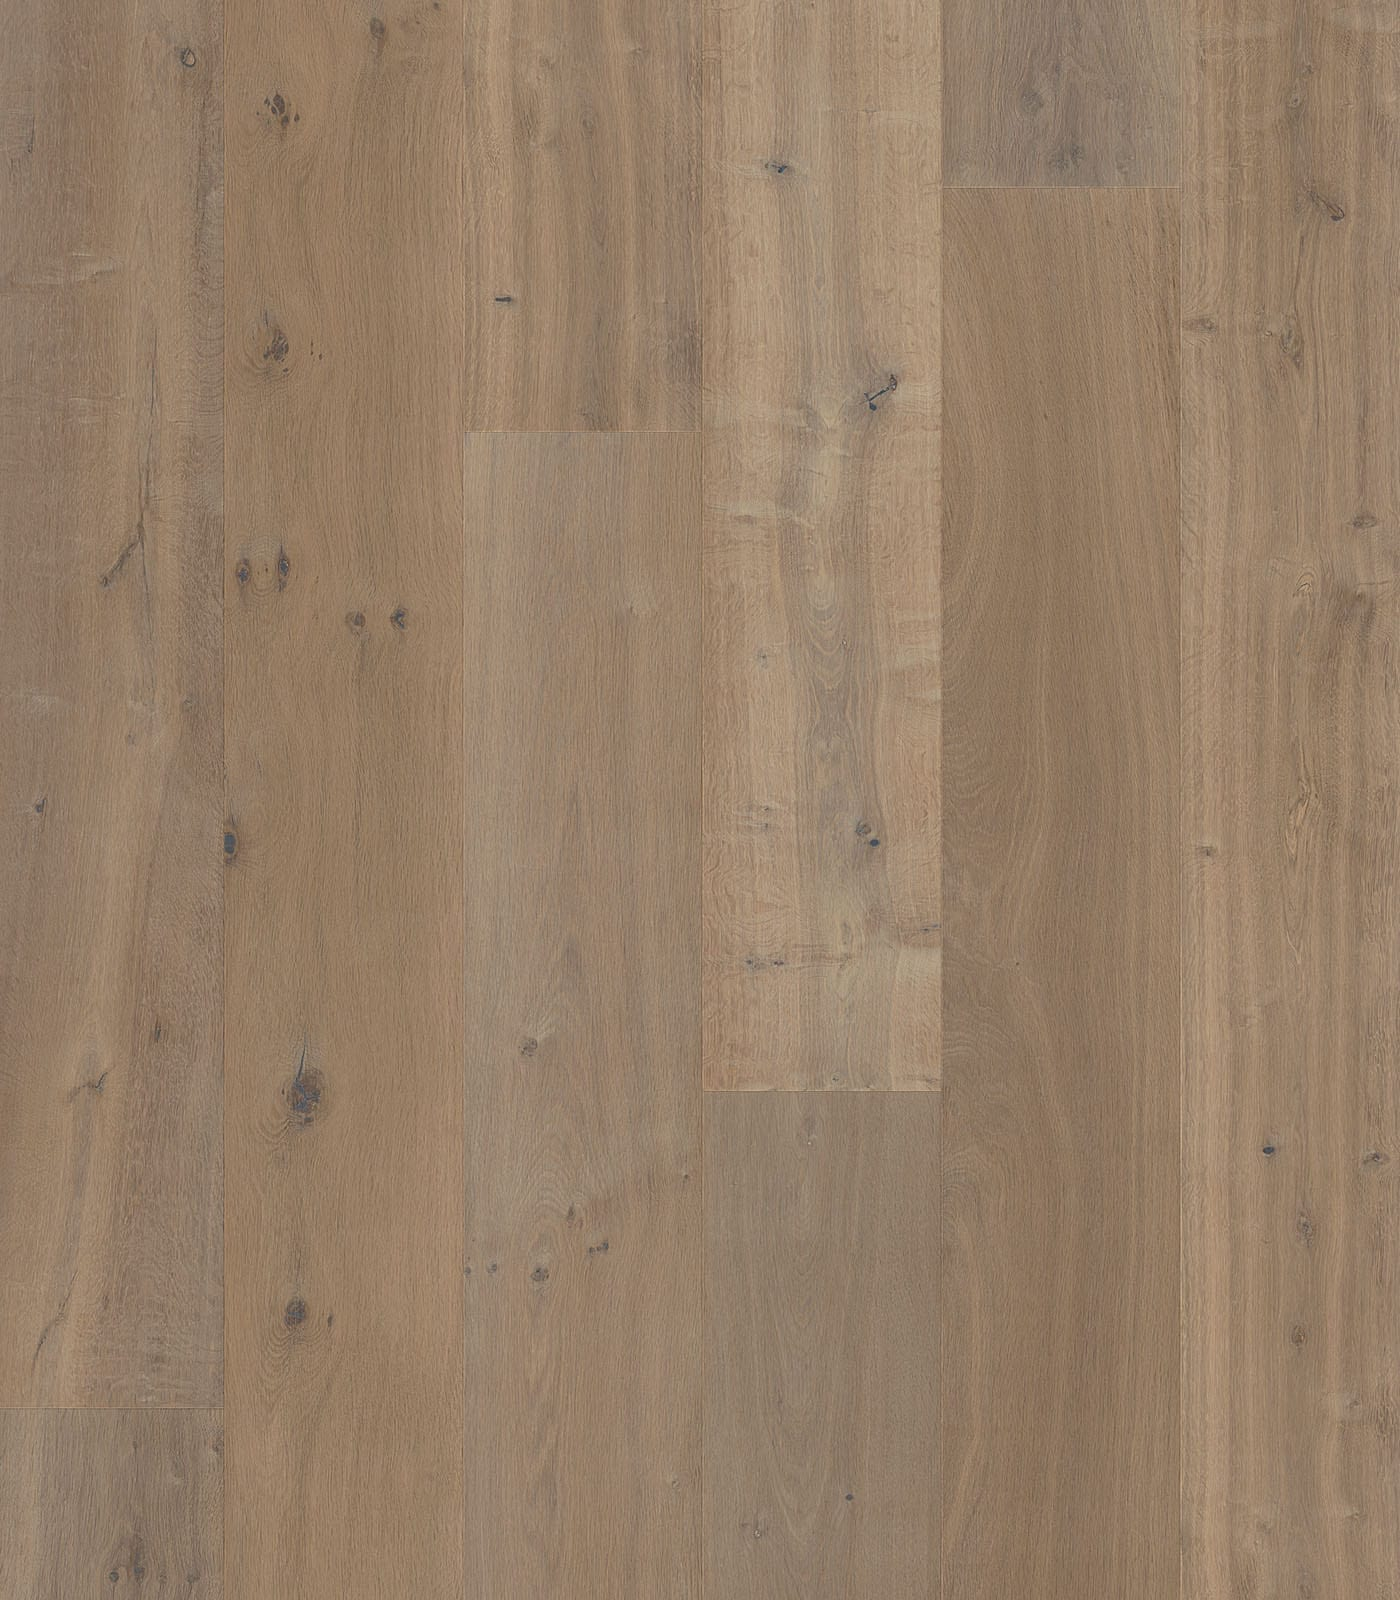 St Moritz-Floors European Oak-Lifestyle Collection